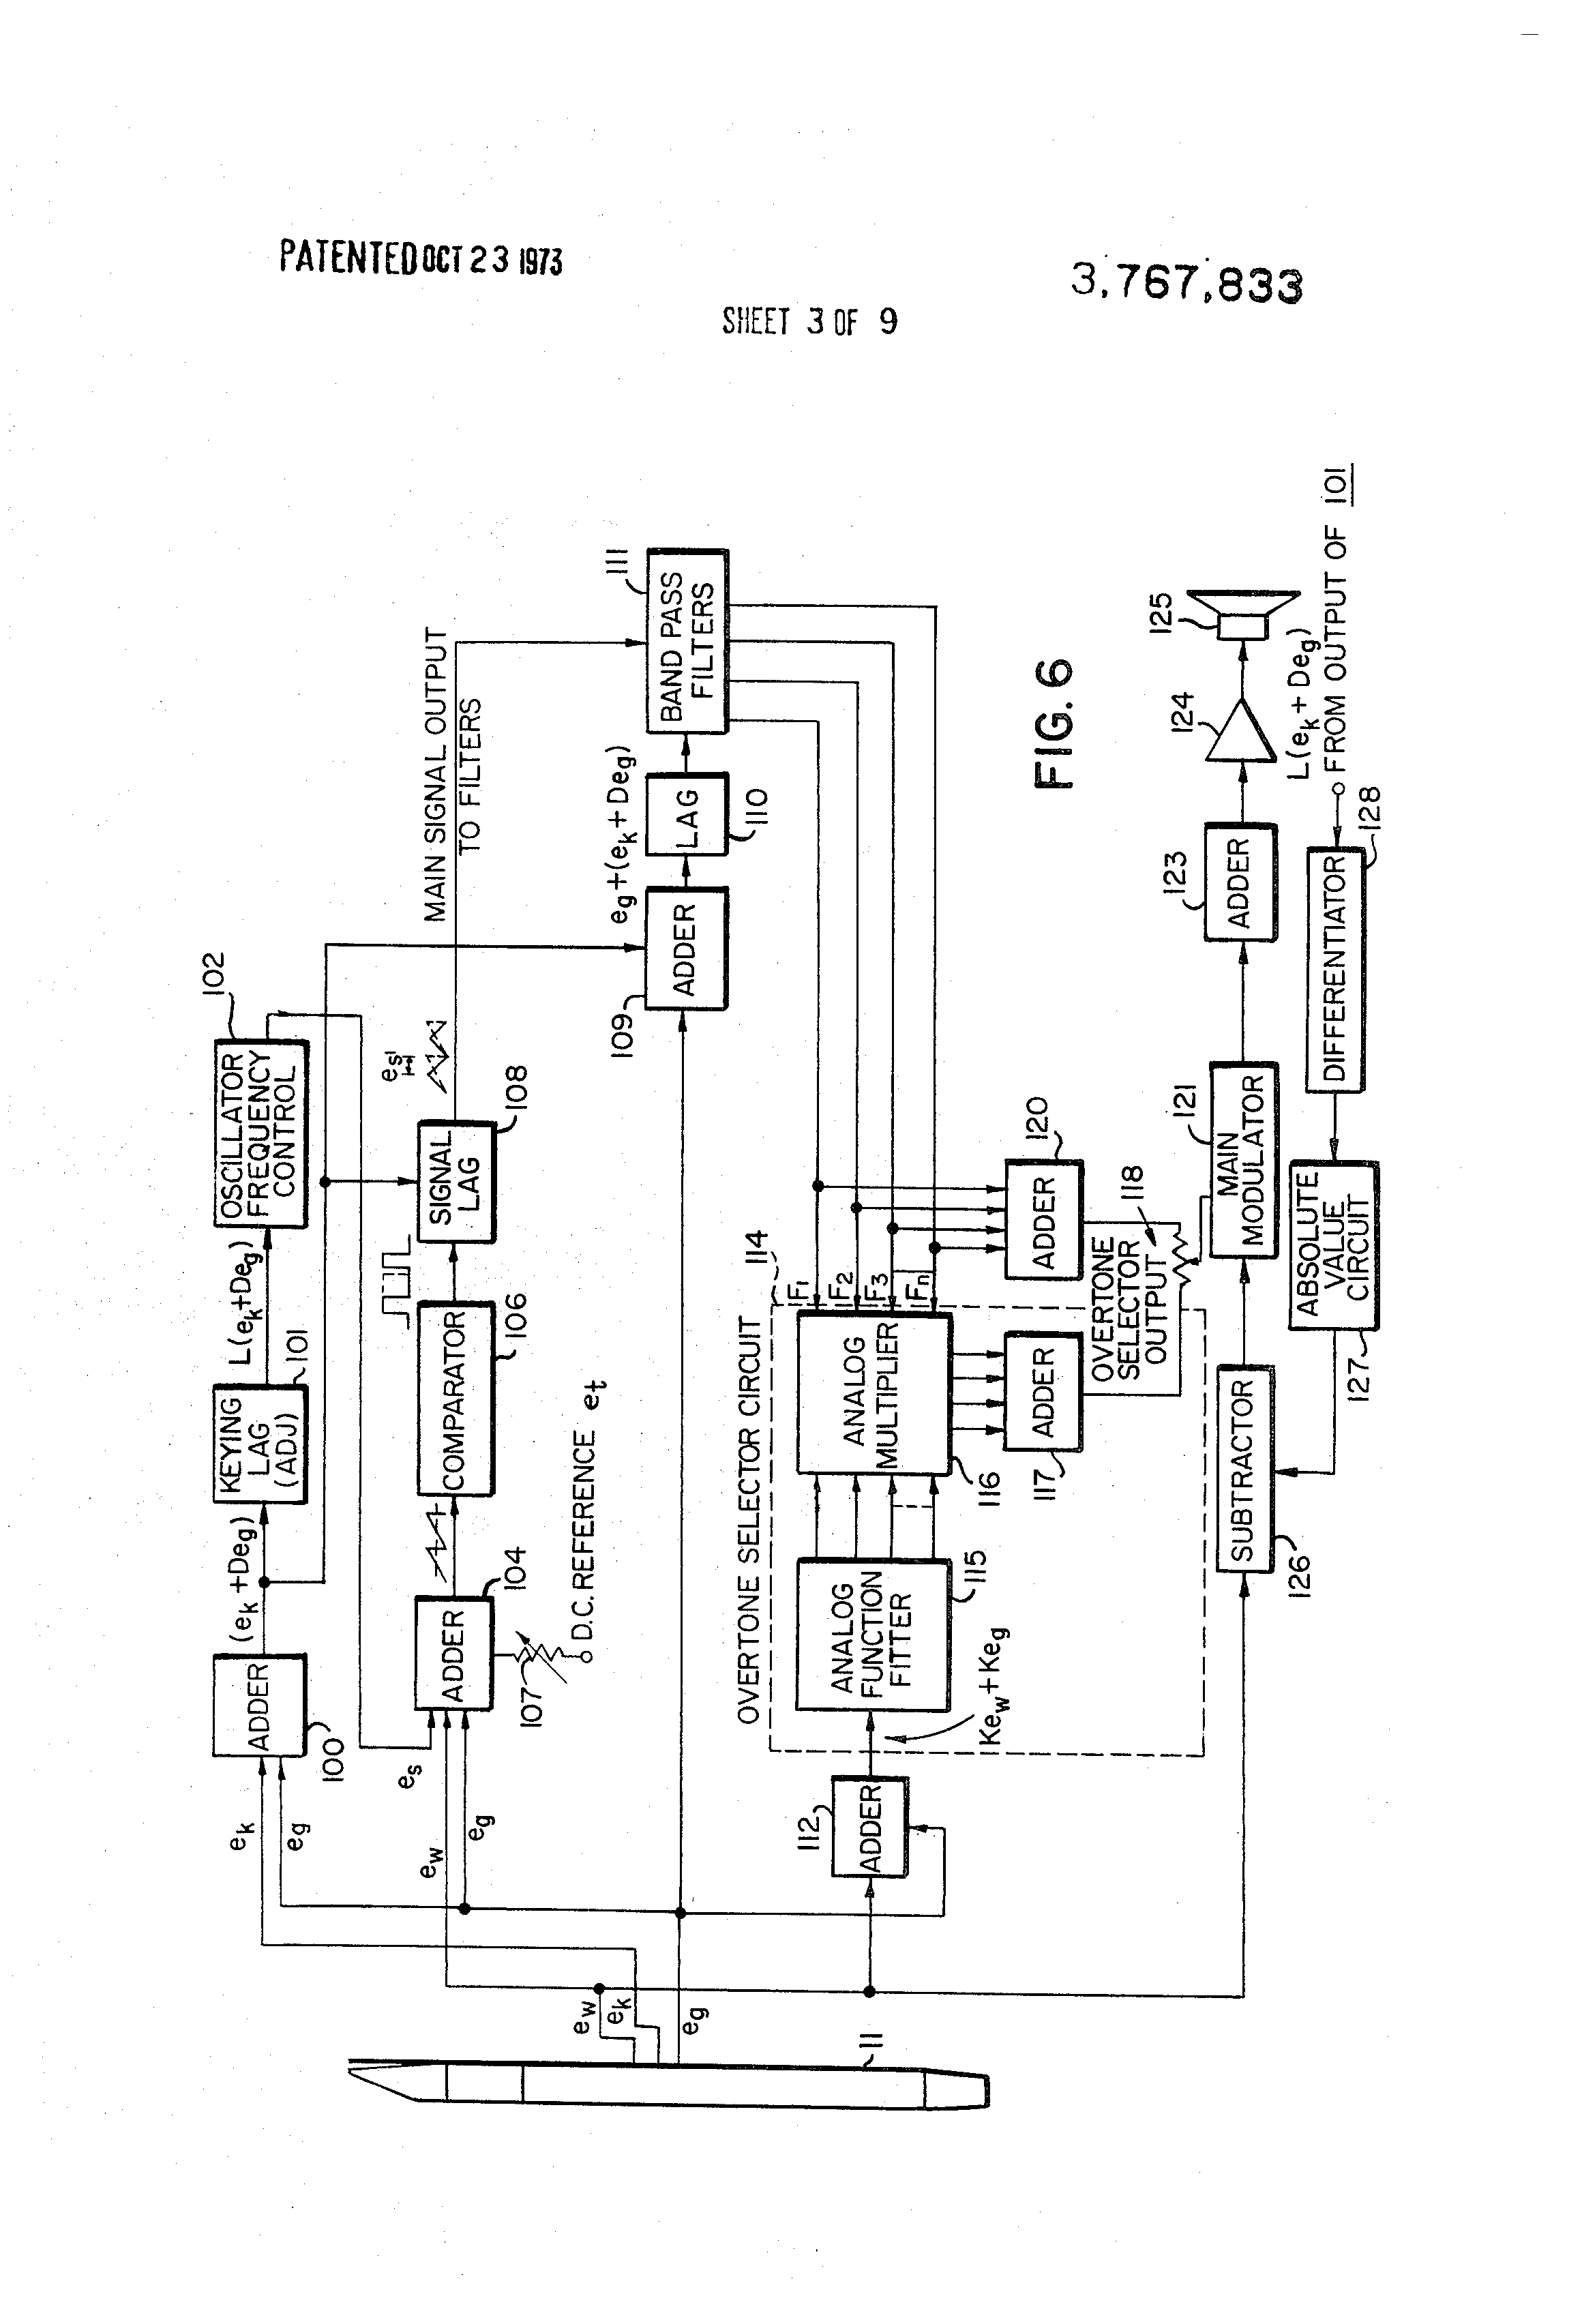 Transistorized Theremin Diagram Wire Data Schema Circuit Patent Us3767833 Electronic Musical Instrument Google Patents Rh Com Wiring Electrical Schematic